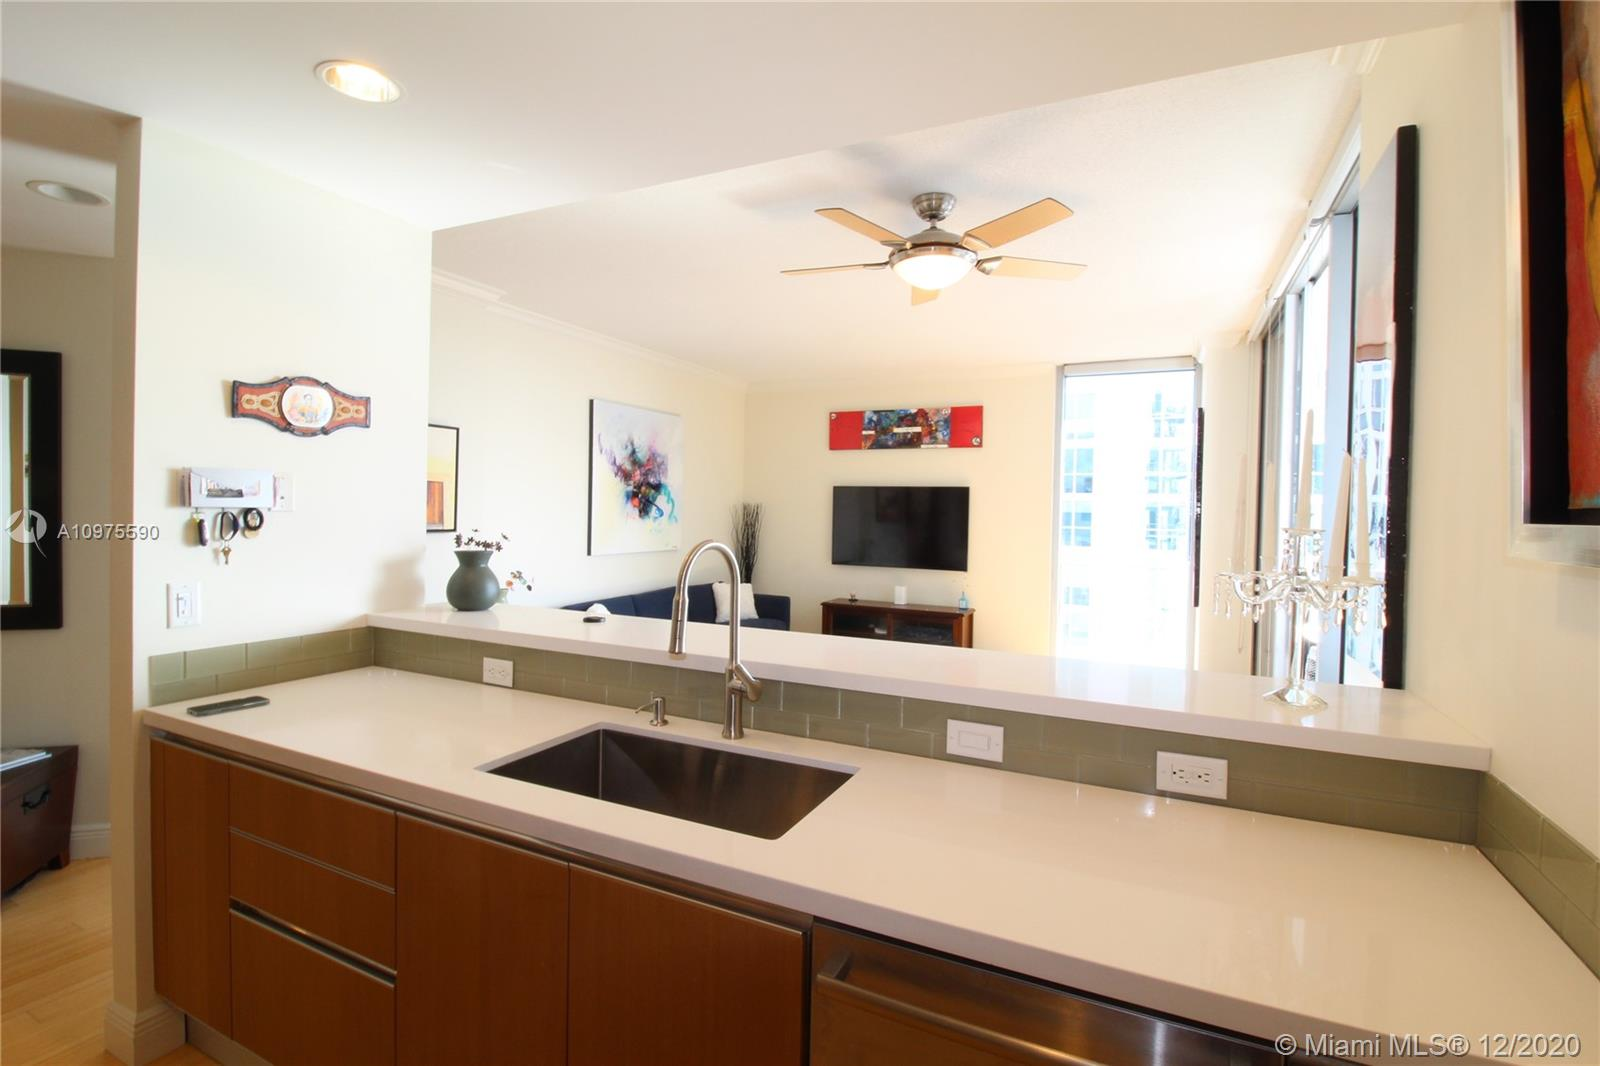 1060 Brickell East Tower #2914 - 1050 S Brickell Ave #2914, Miami, FL 33131